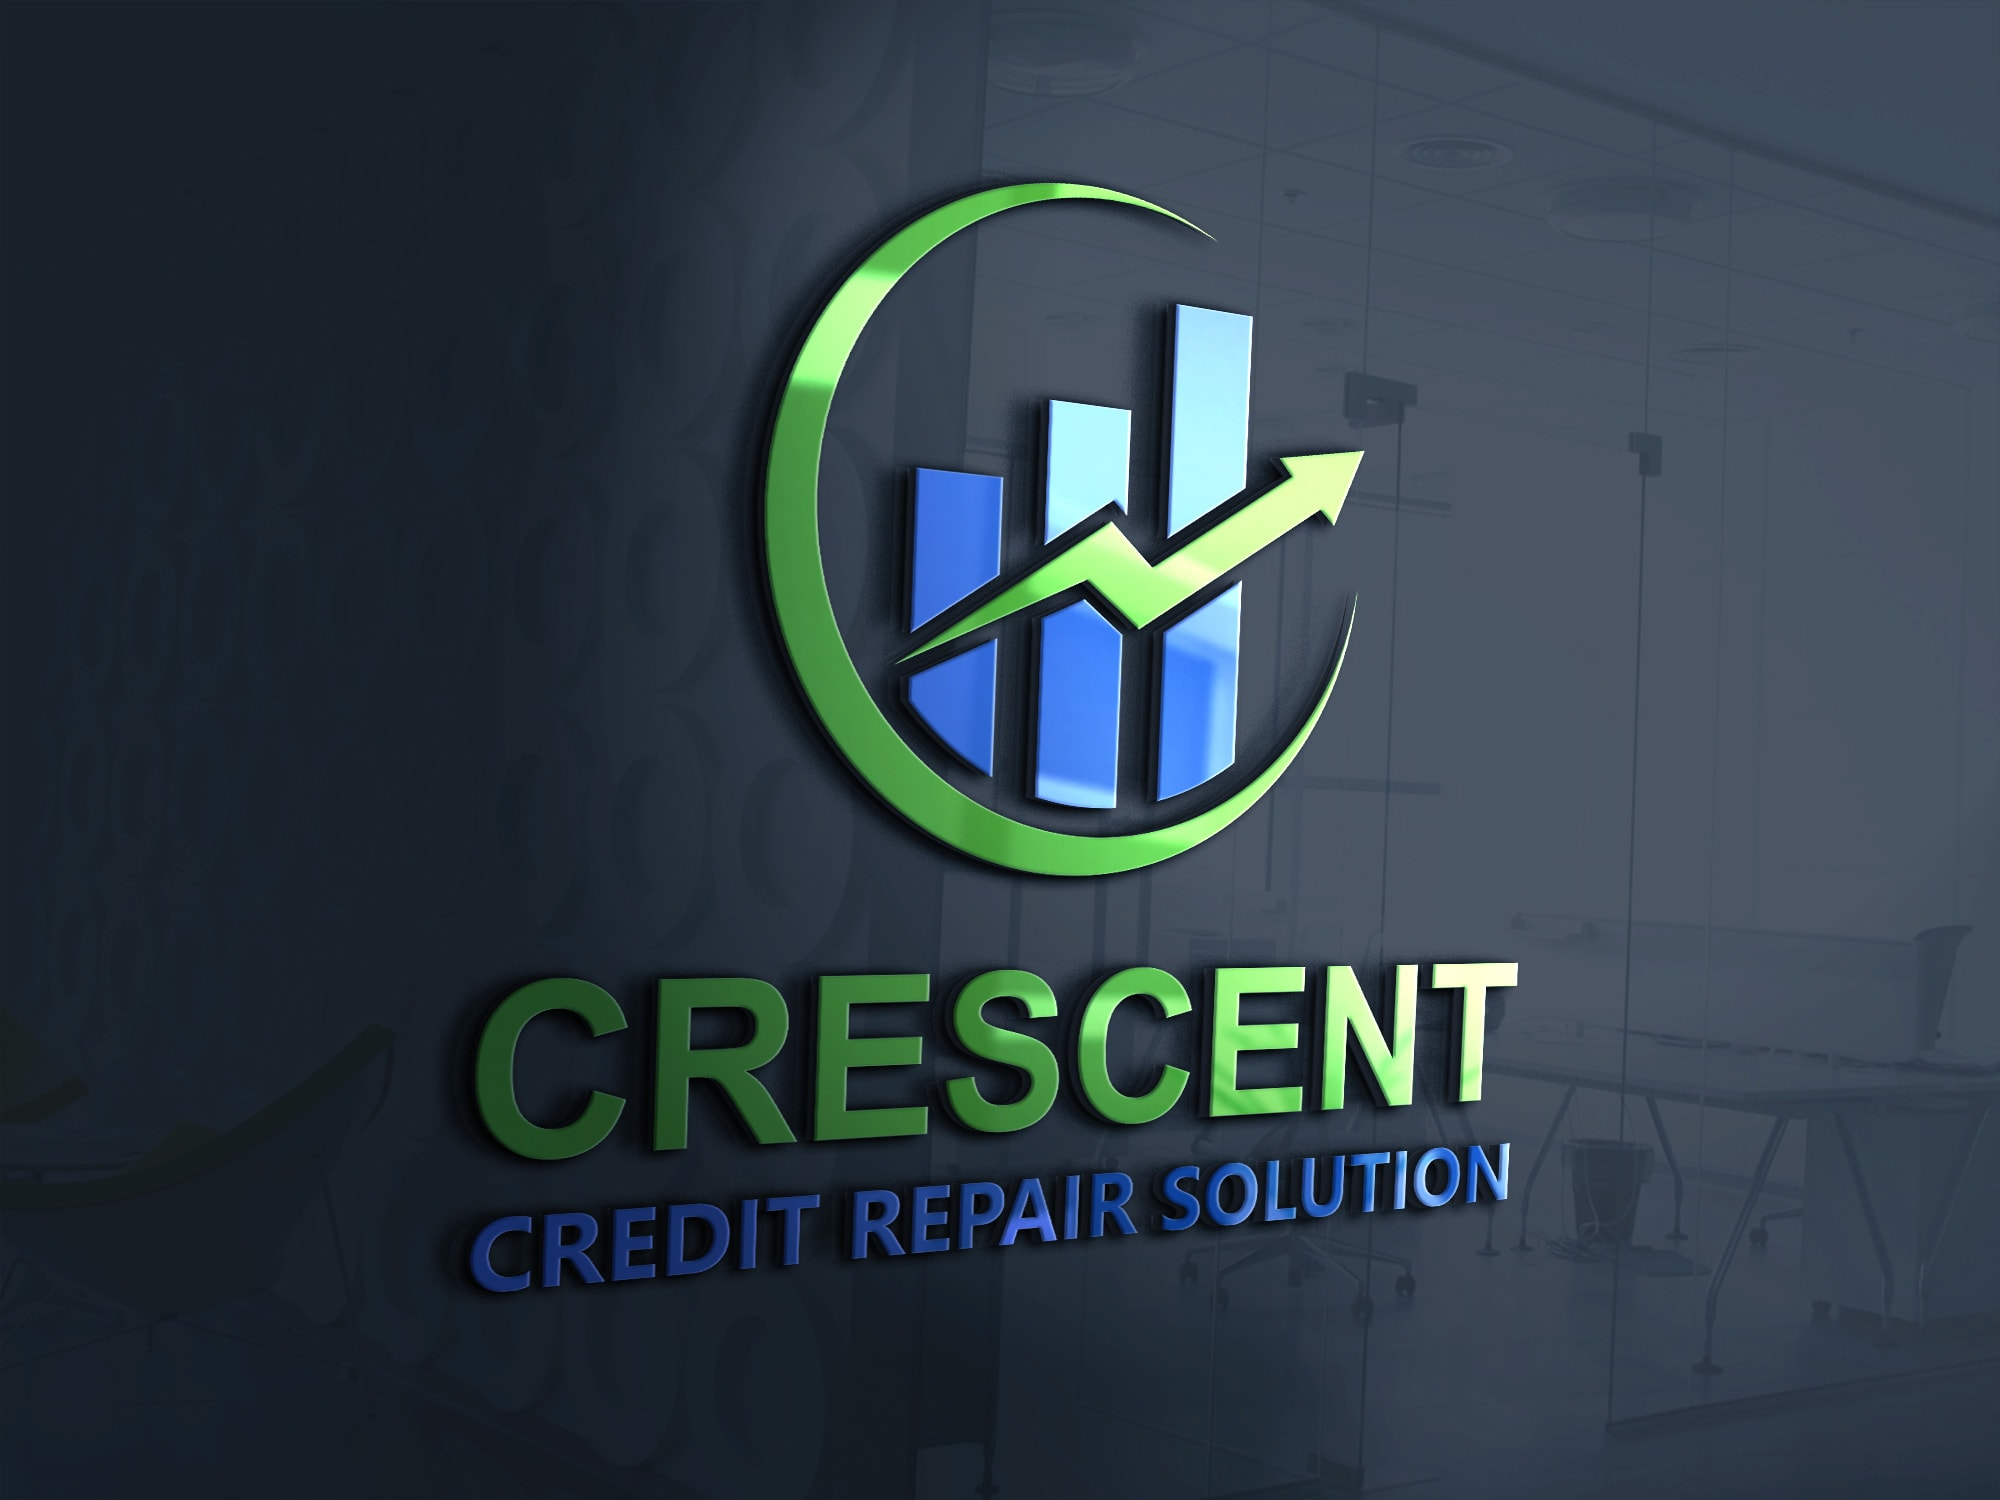 Design Credit Repair Accounting Business And Financial Logo By Sumon Gd